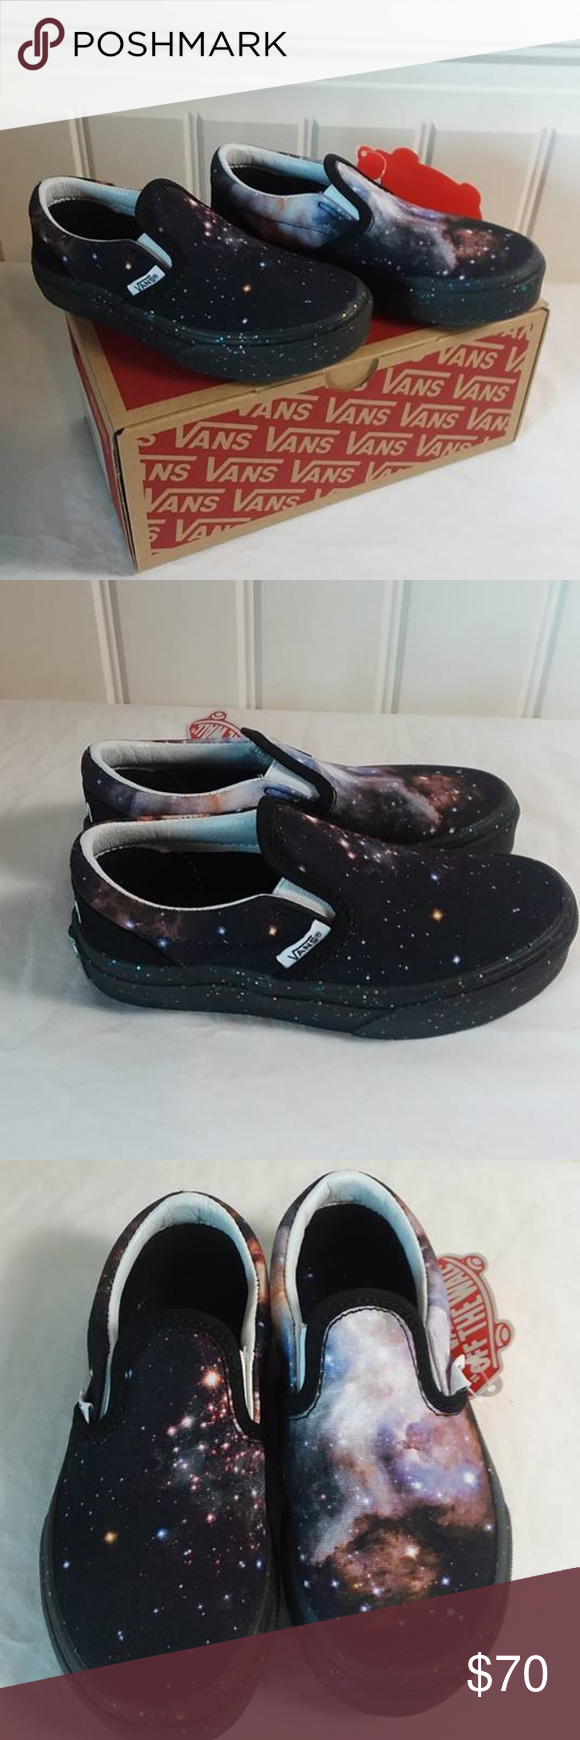 2c2a4be44e Vans TODDLER VANS X SPACE VOYAGER GALAXY Size 11 Vans TODDLER VANS X SPACE  VOYAGER CLASSIC SLIP-ON Toddler Galaxy Shoes Size 11 Brand New